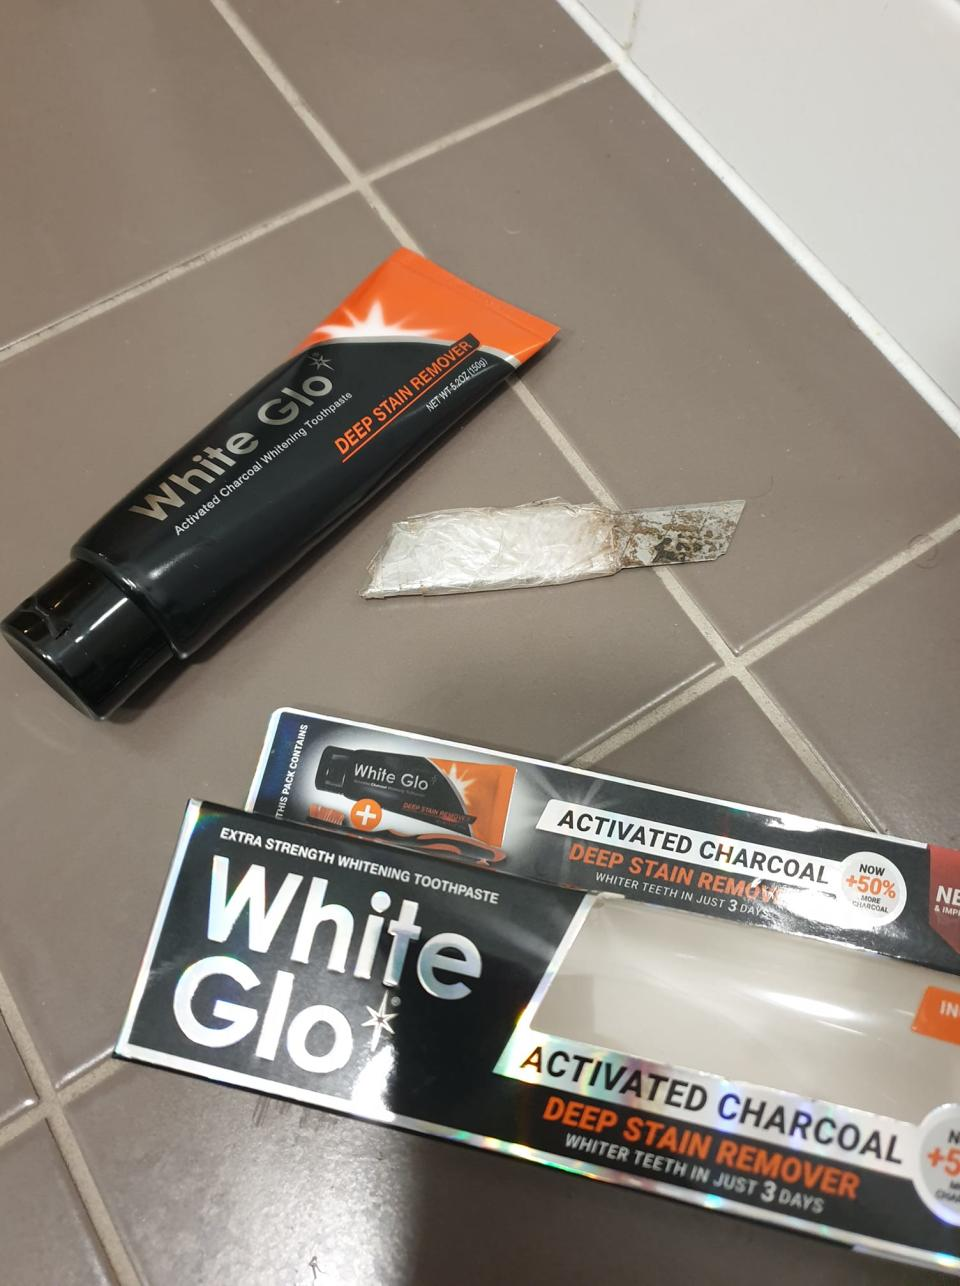 Tube of White Glo toothpaste and box with razor blade next to it. Source: Facebook